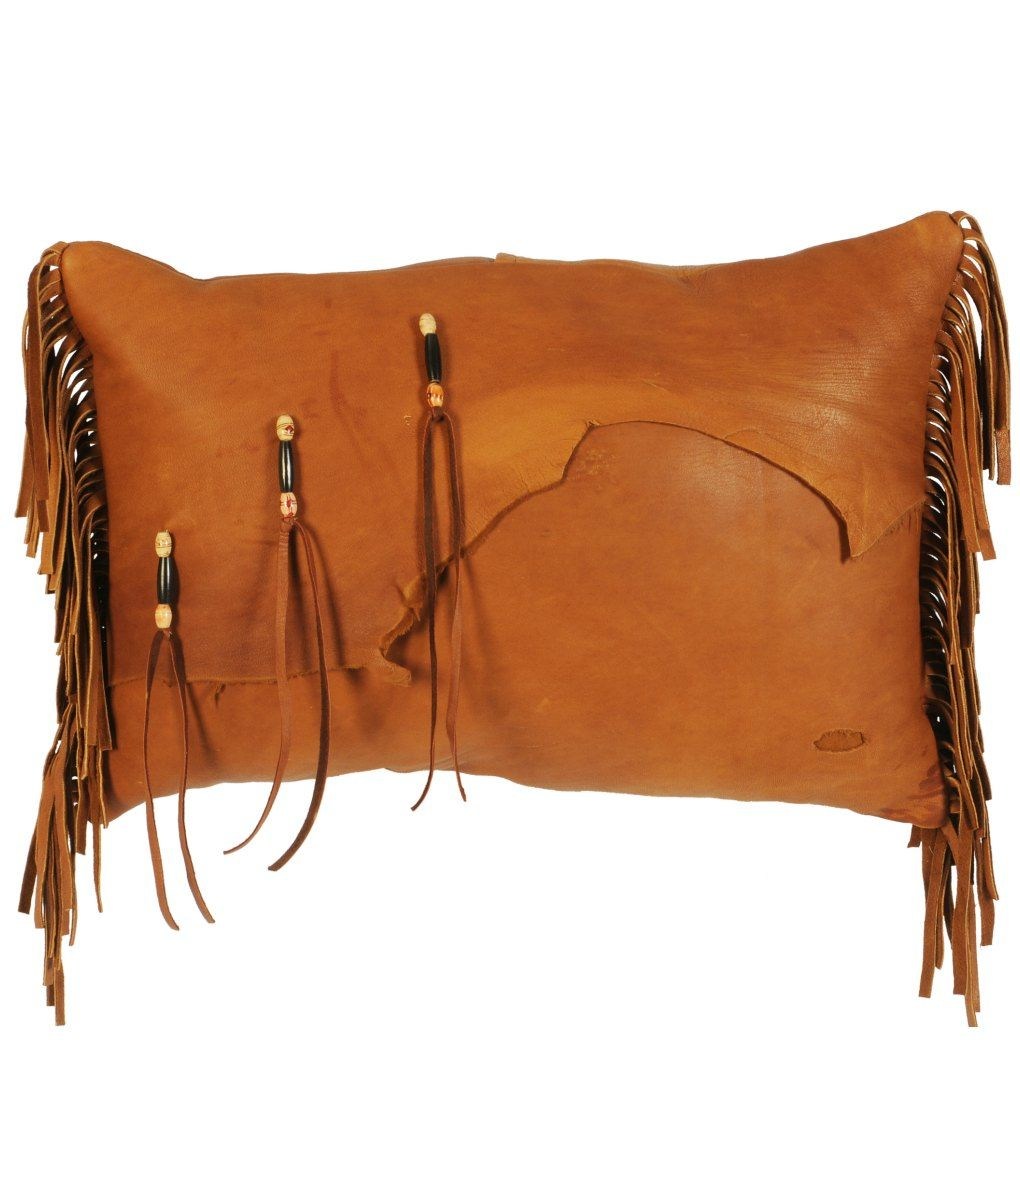 Deerskin Pillow with Beads and Fringe | Western Decor | Rustic ...